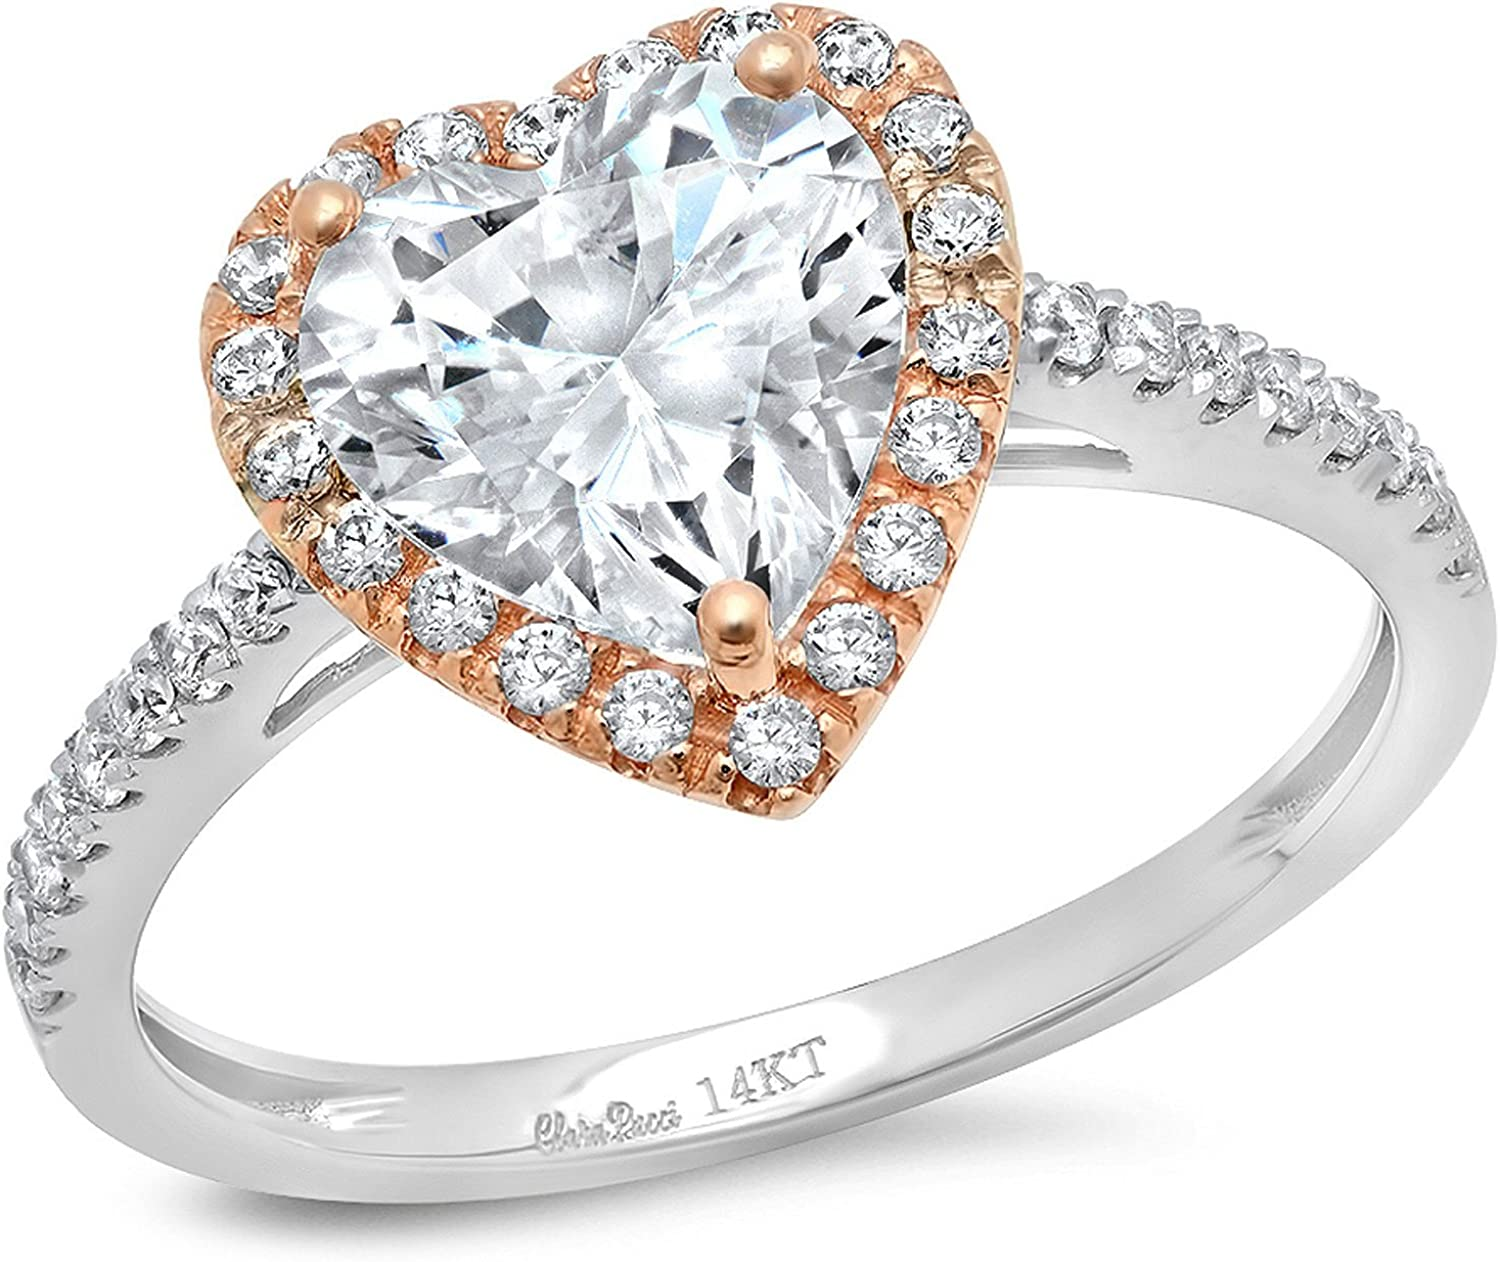 2.36 ct Brilliant Heart Cut Solitaire with Accent Halo Stunning Genuine Moissanite Ideal VVS1 D & Simulated Diamond Engagement Promise Statement Anniversary Bridal Wedding Ring Solid 14k 2 Tone Gold